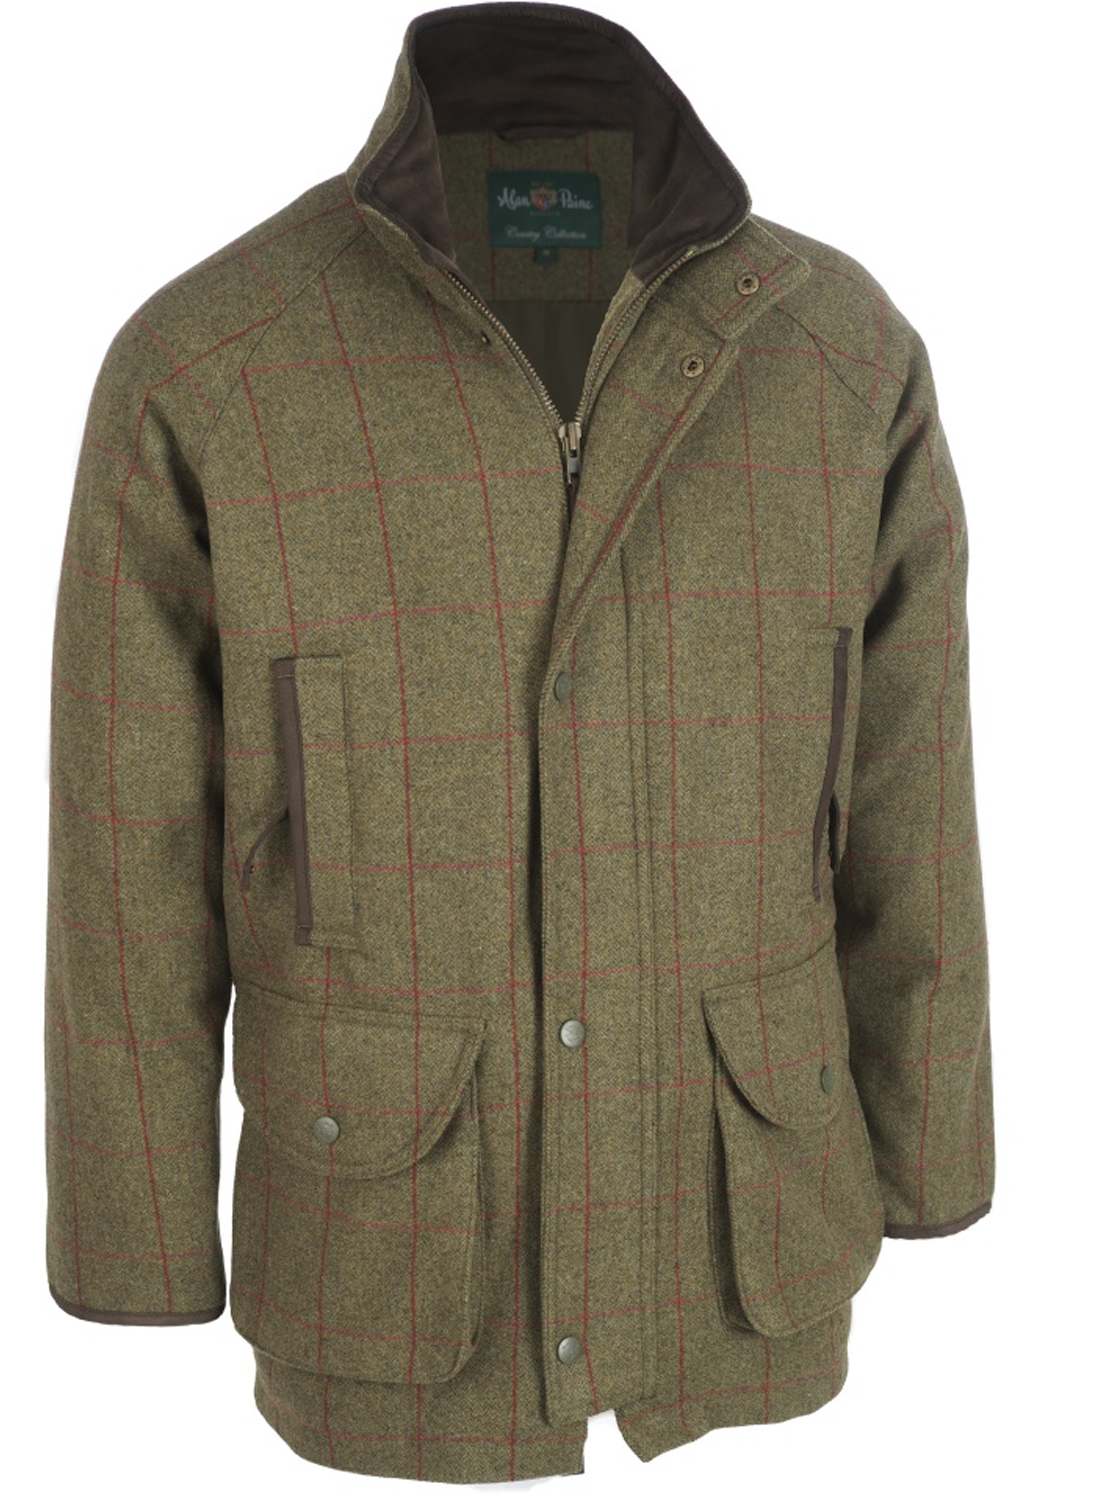 d0395fa40ae52 Alan Paine Combrook Sage Tweed Shooting Coat - Bredon Hill Country